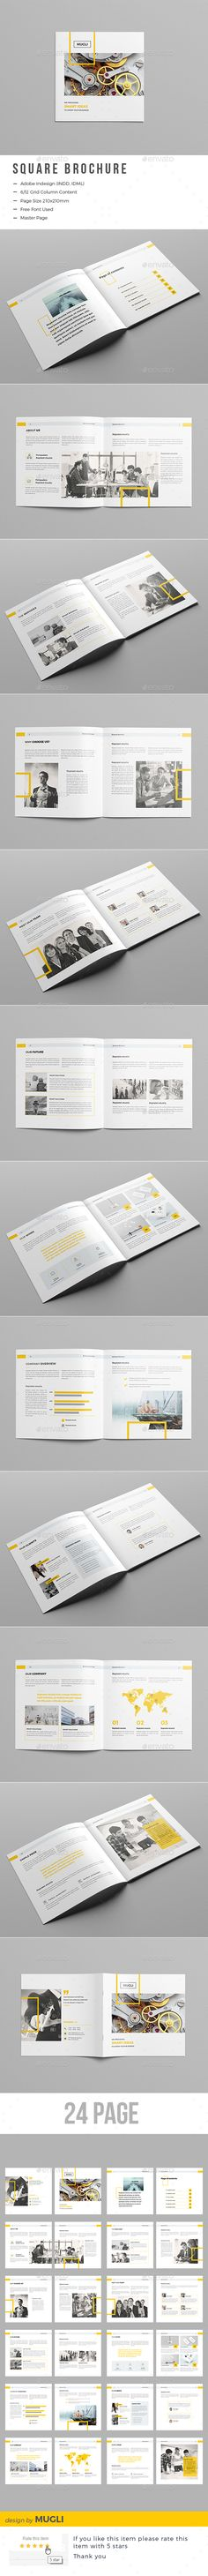 Naturalis Lookbook / Magazine | Indesign templates, Minimalist and ...